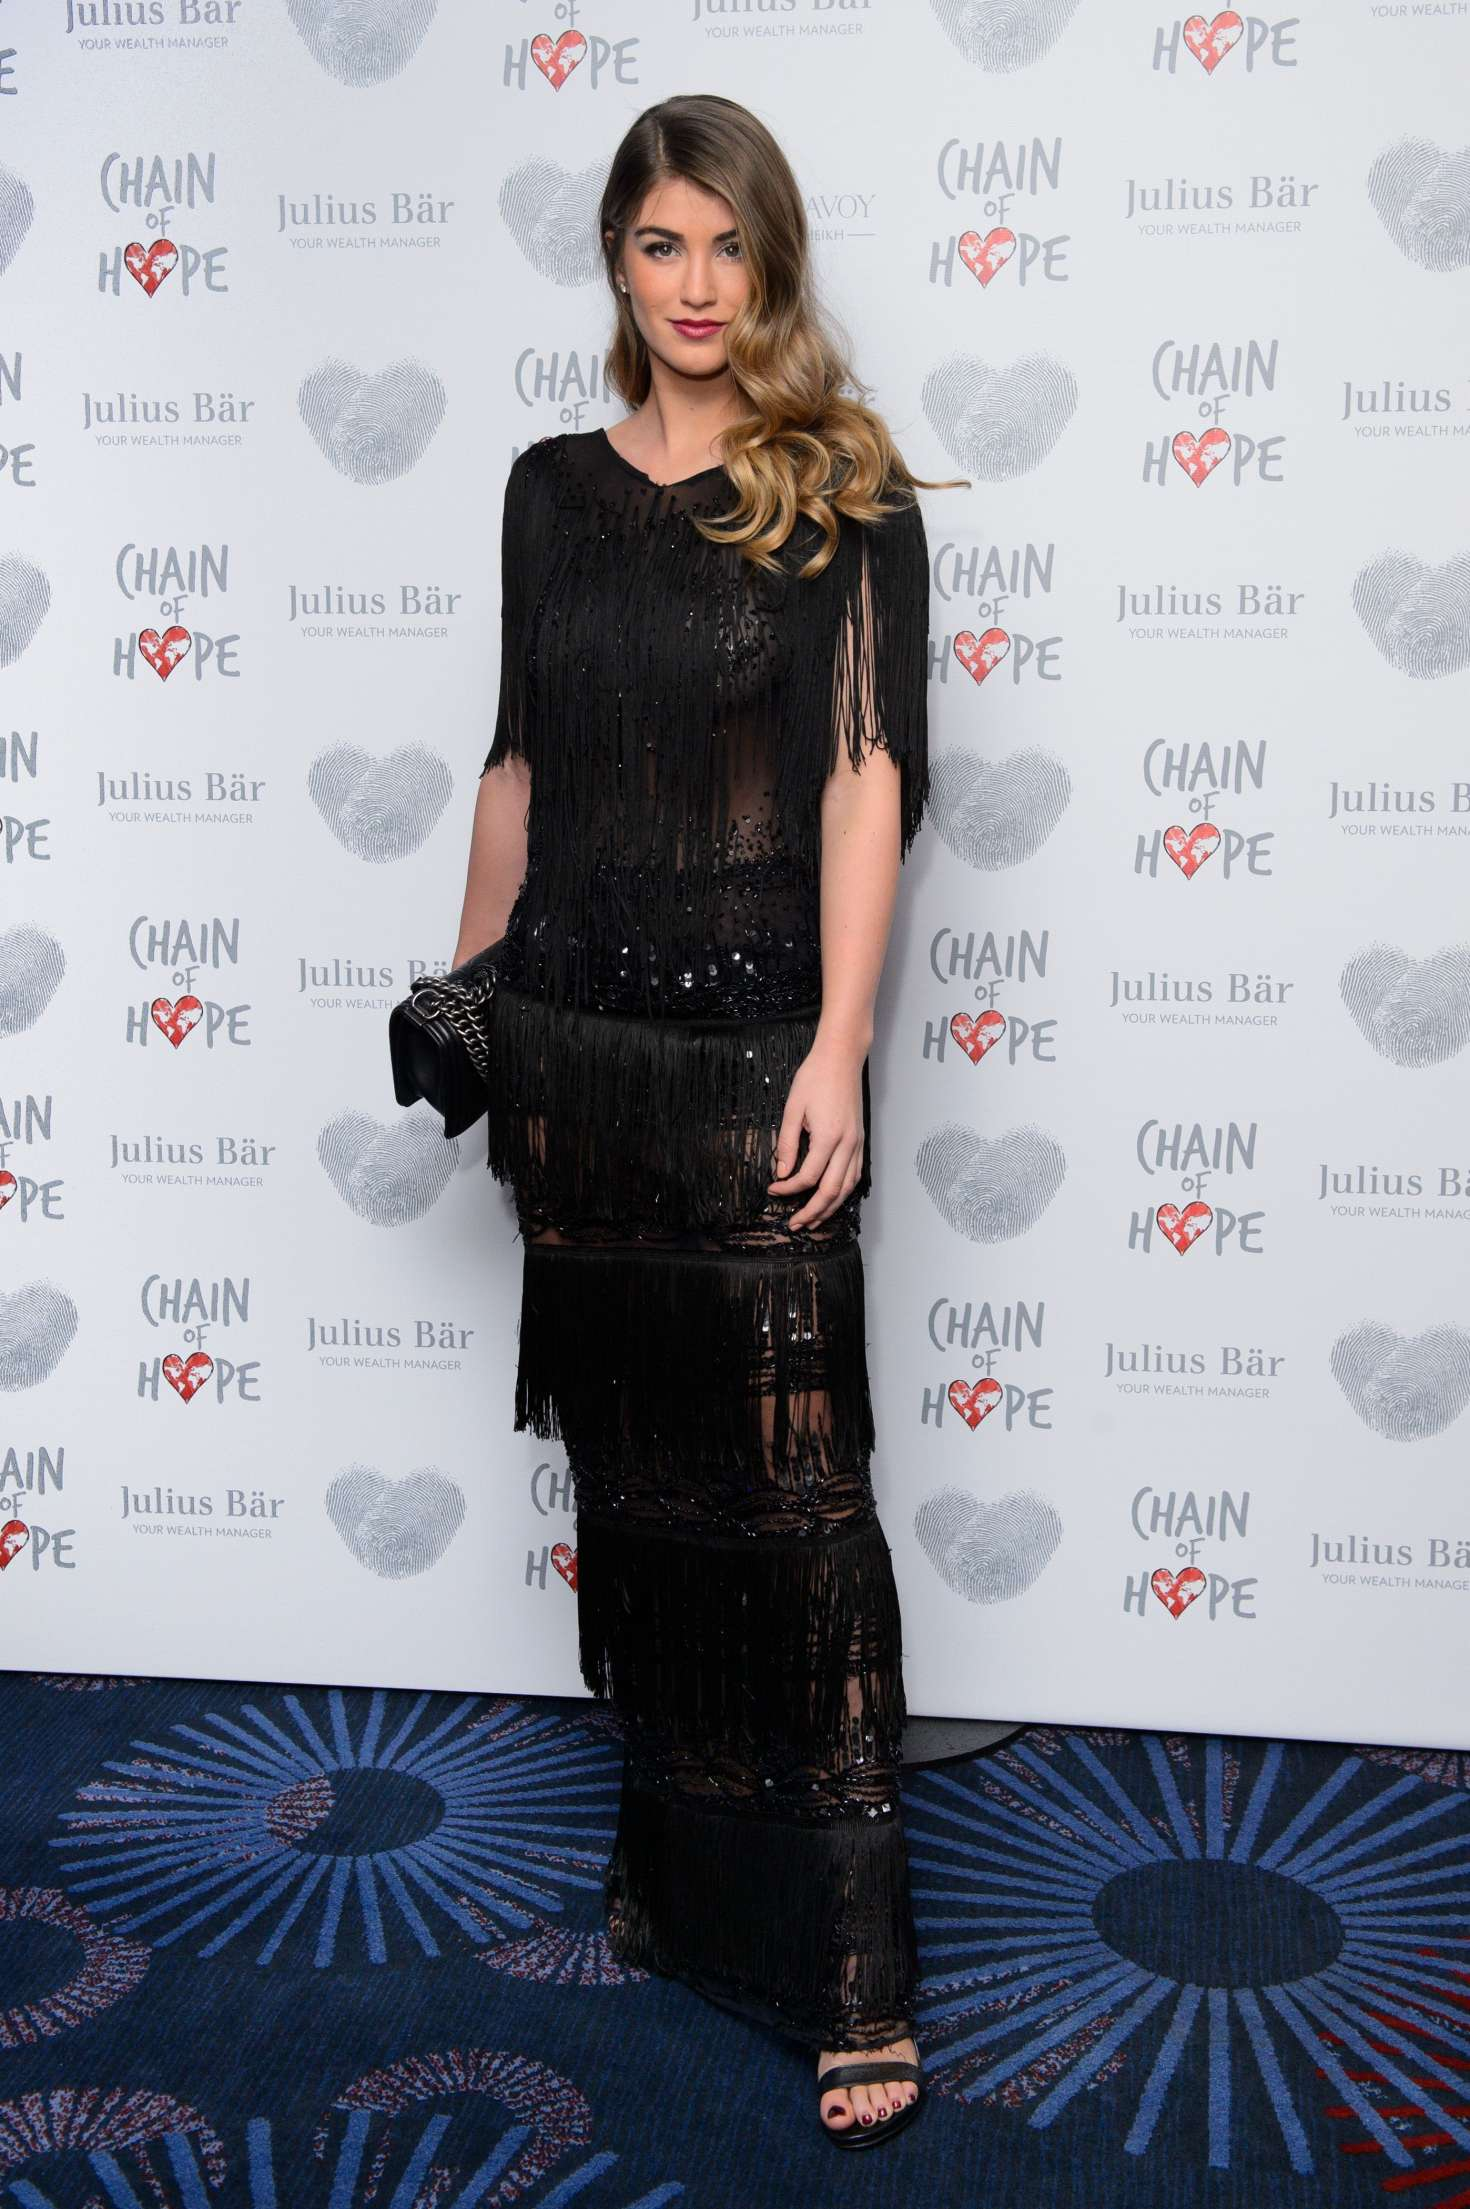 Amy Willerton 2016 : Amy Willerton: Chain Of Hope Annual Gala Ball 2016 -11